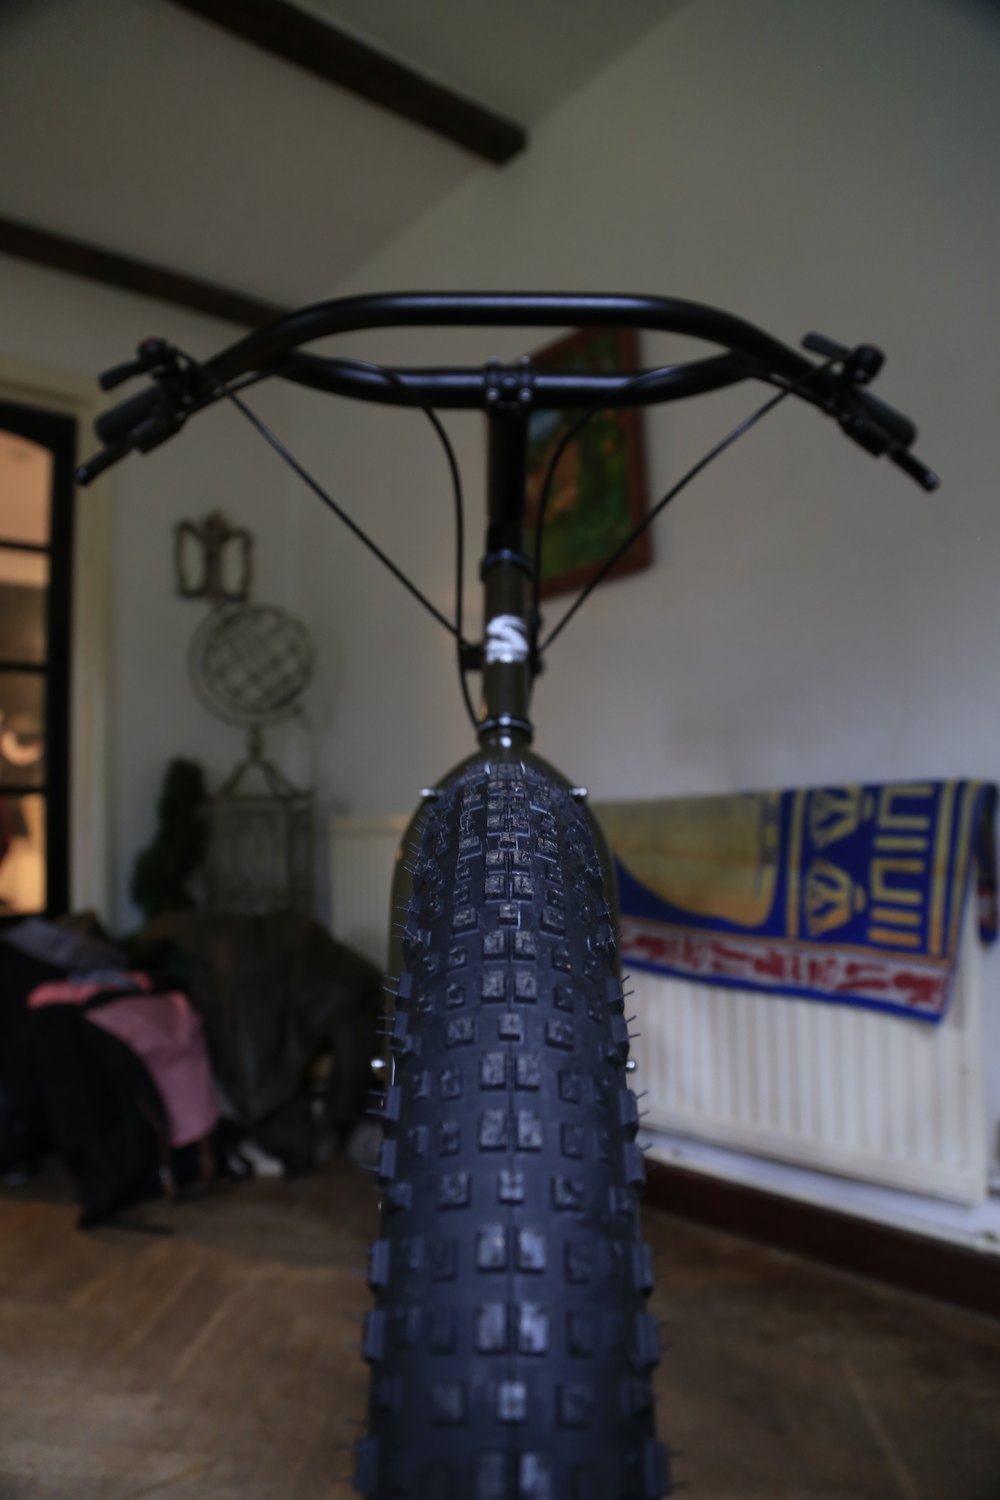 "surly, Surly ECR, fat bike, bikepacking, 29er, knards, tarp, pedalingnowhere, whileoutriding, revelate, Salsa, Wildcat Gear, Wildcat 3"" tyres, blog, bicycle, bikes, mountain bike, cycle gear,"